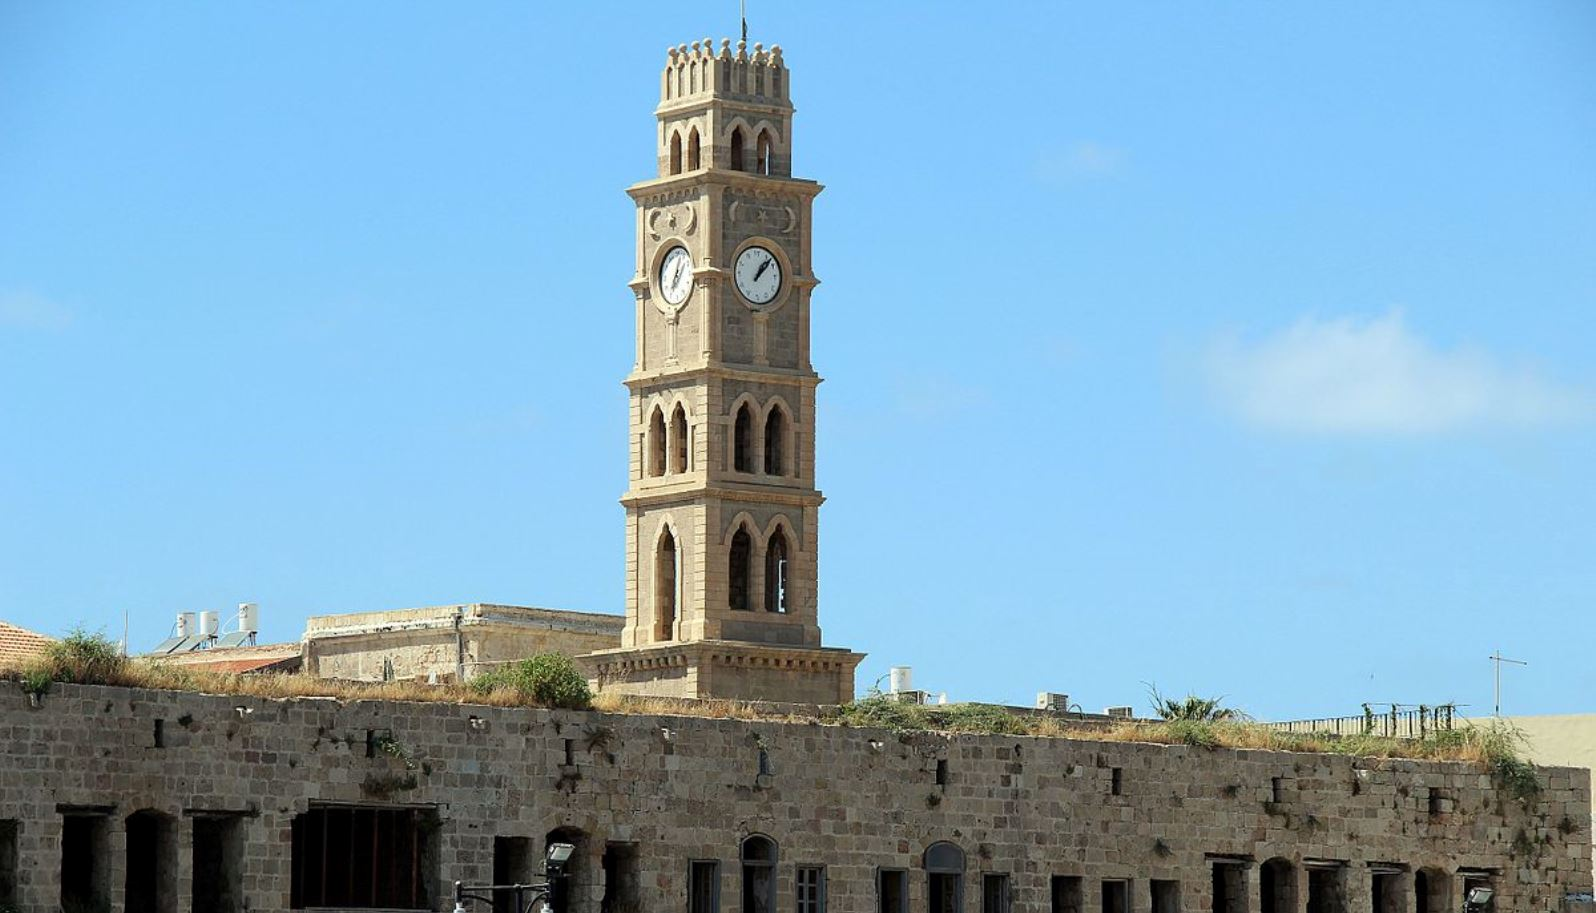 Acre clock tower photo by Larisa Sklar Giller/Wikimedia Commons